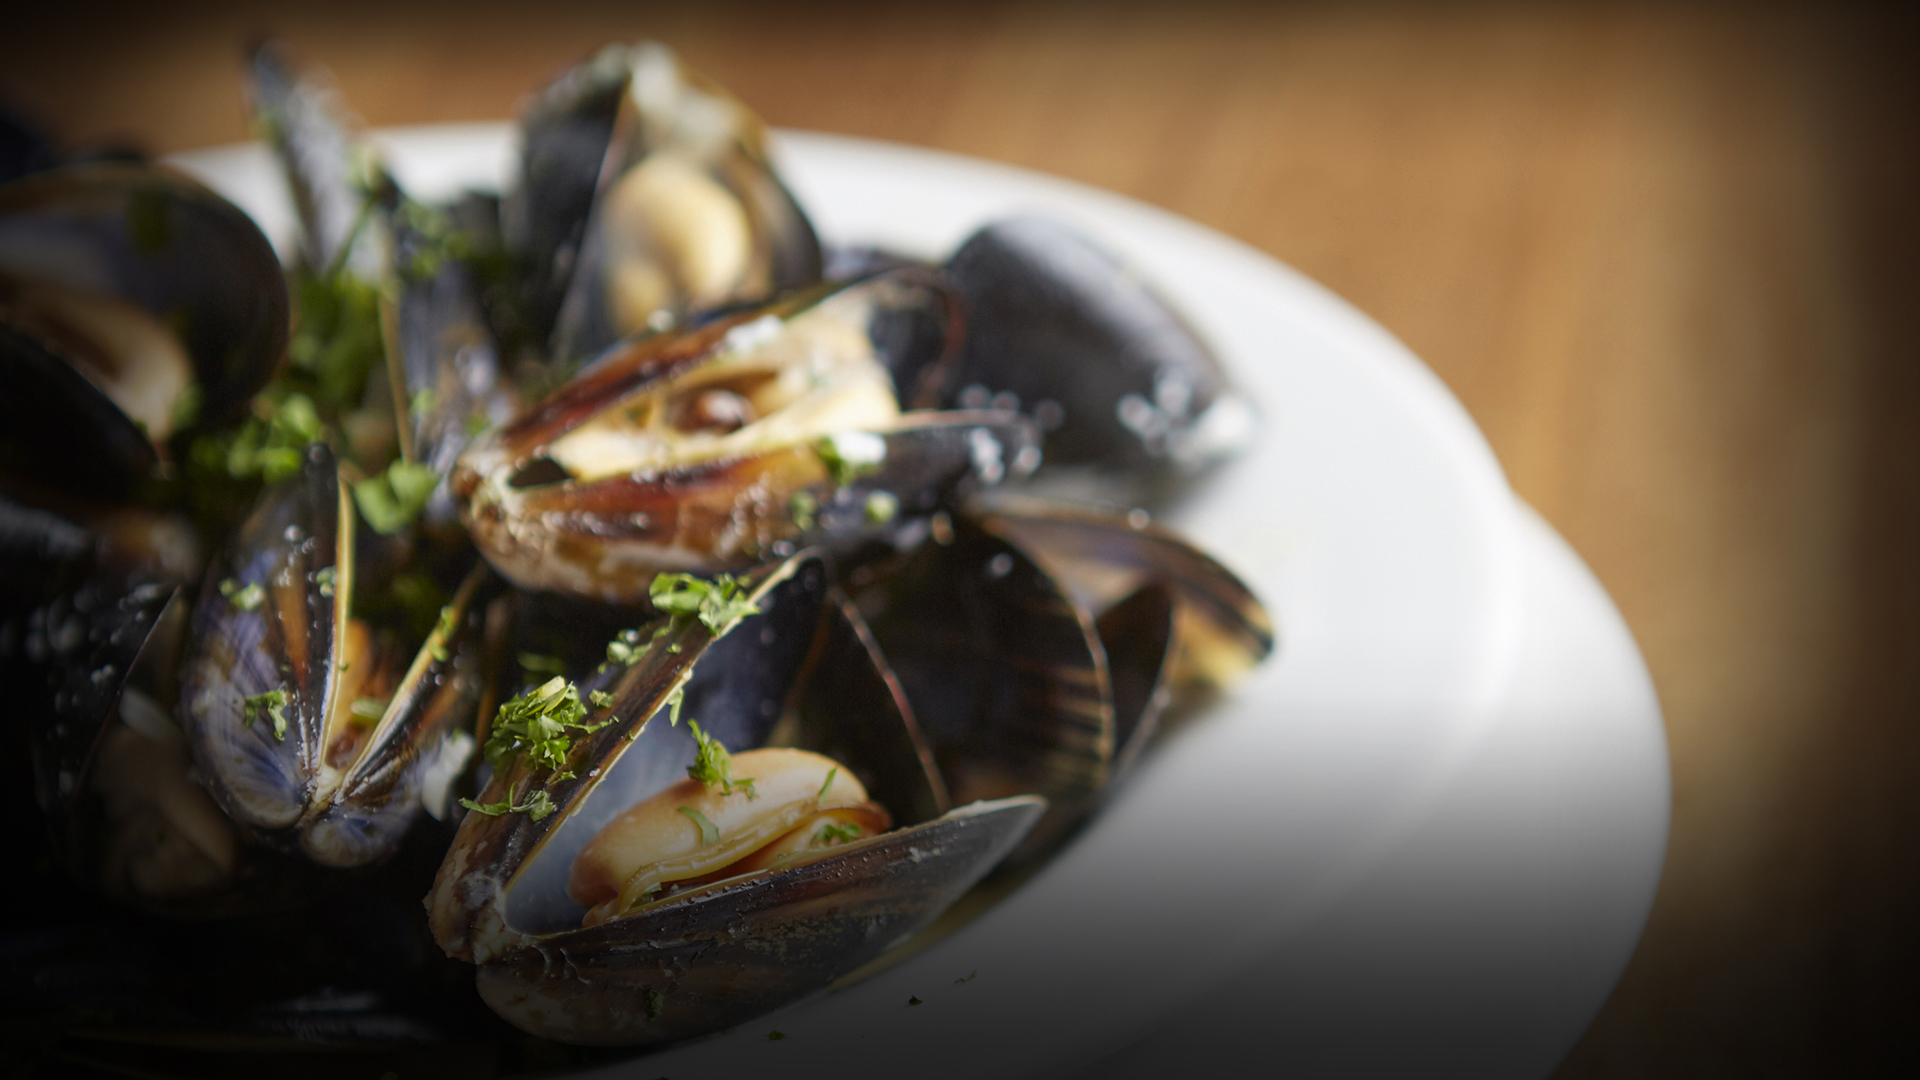 A plate of mussels at The Weir pub, Brentford